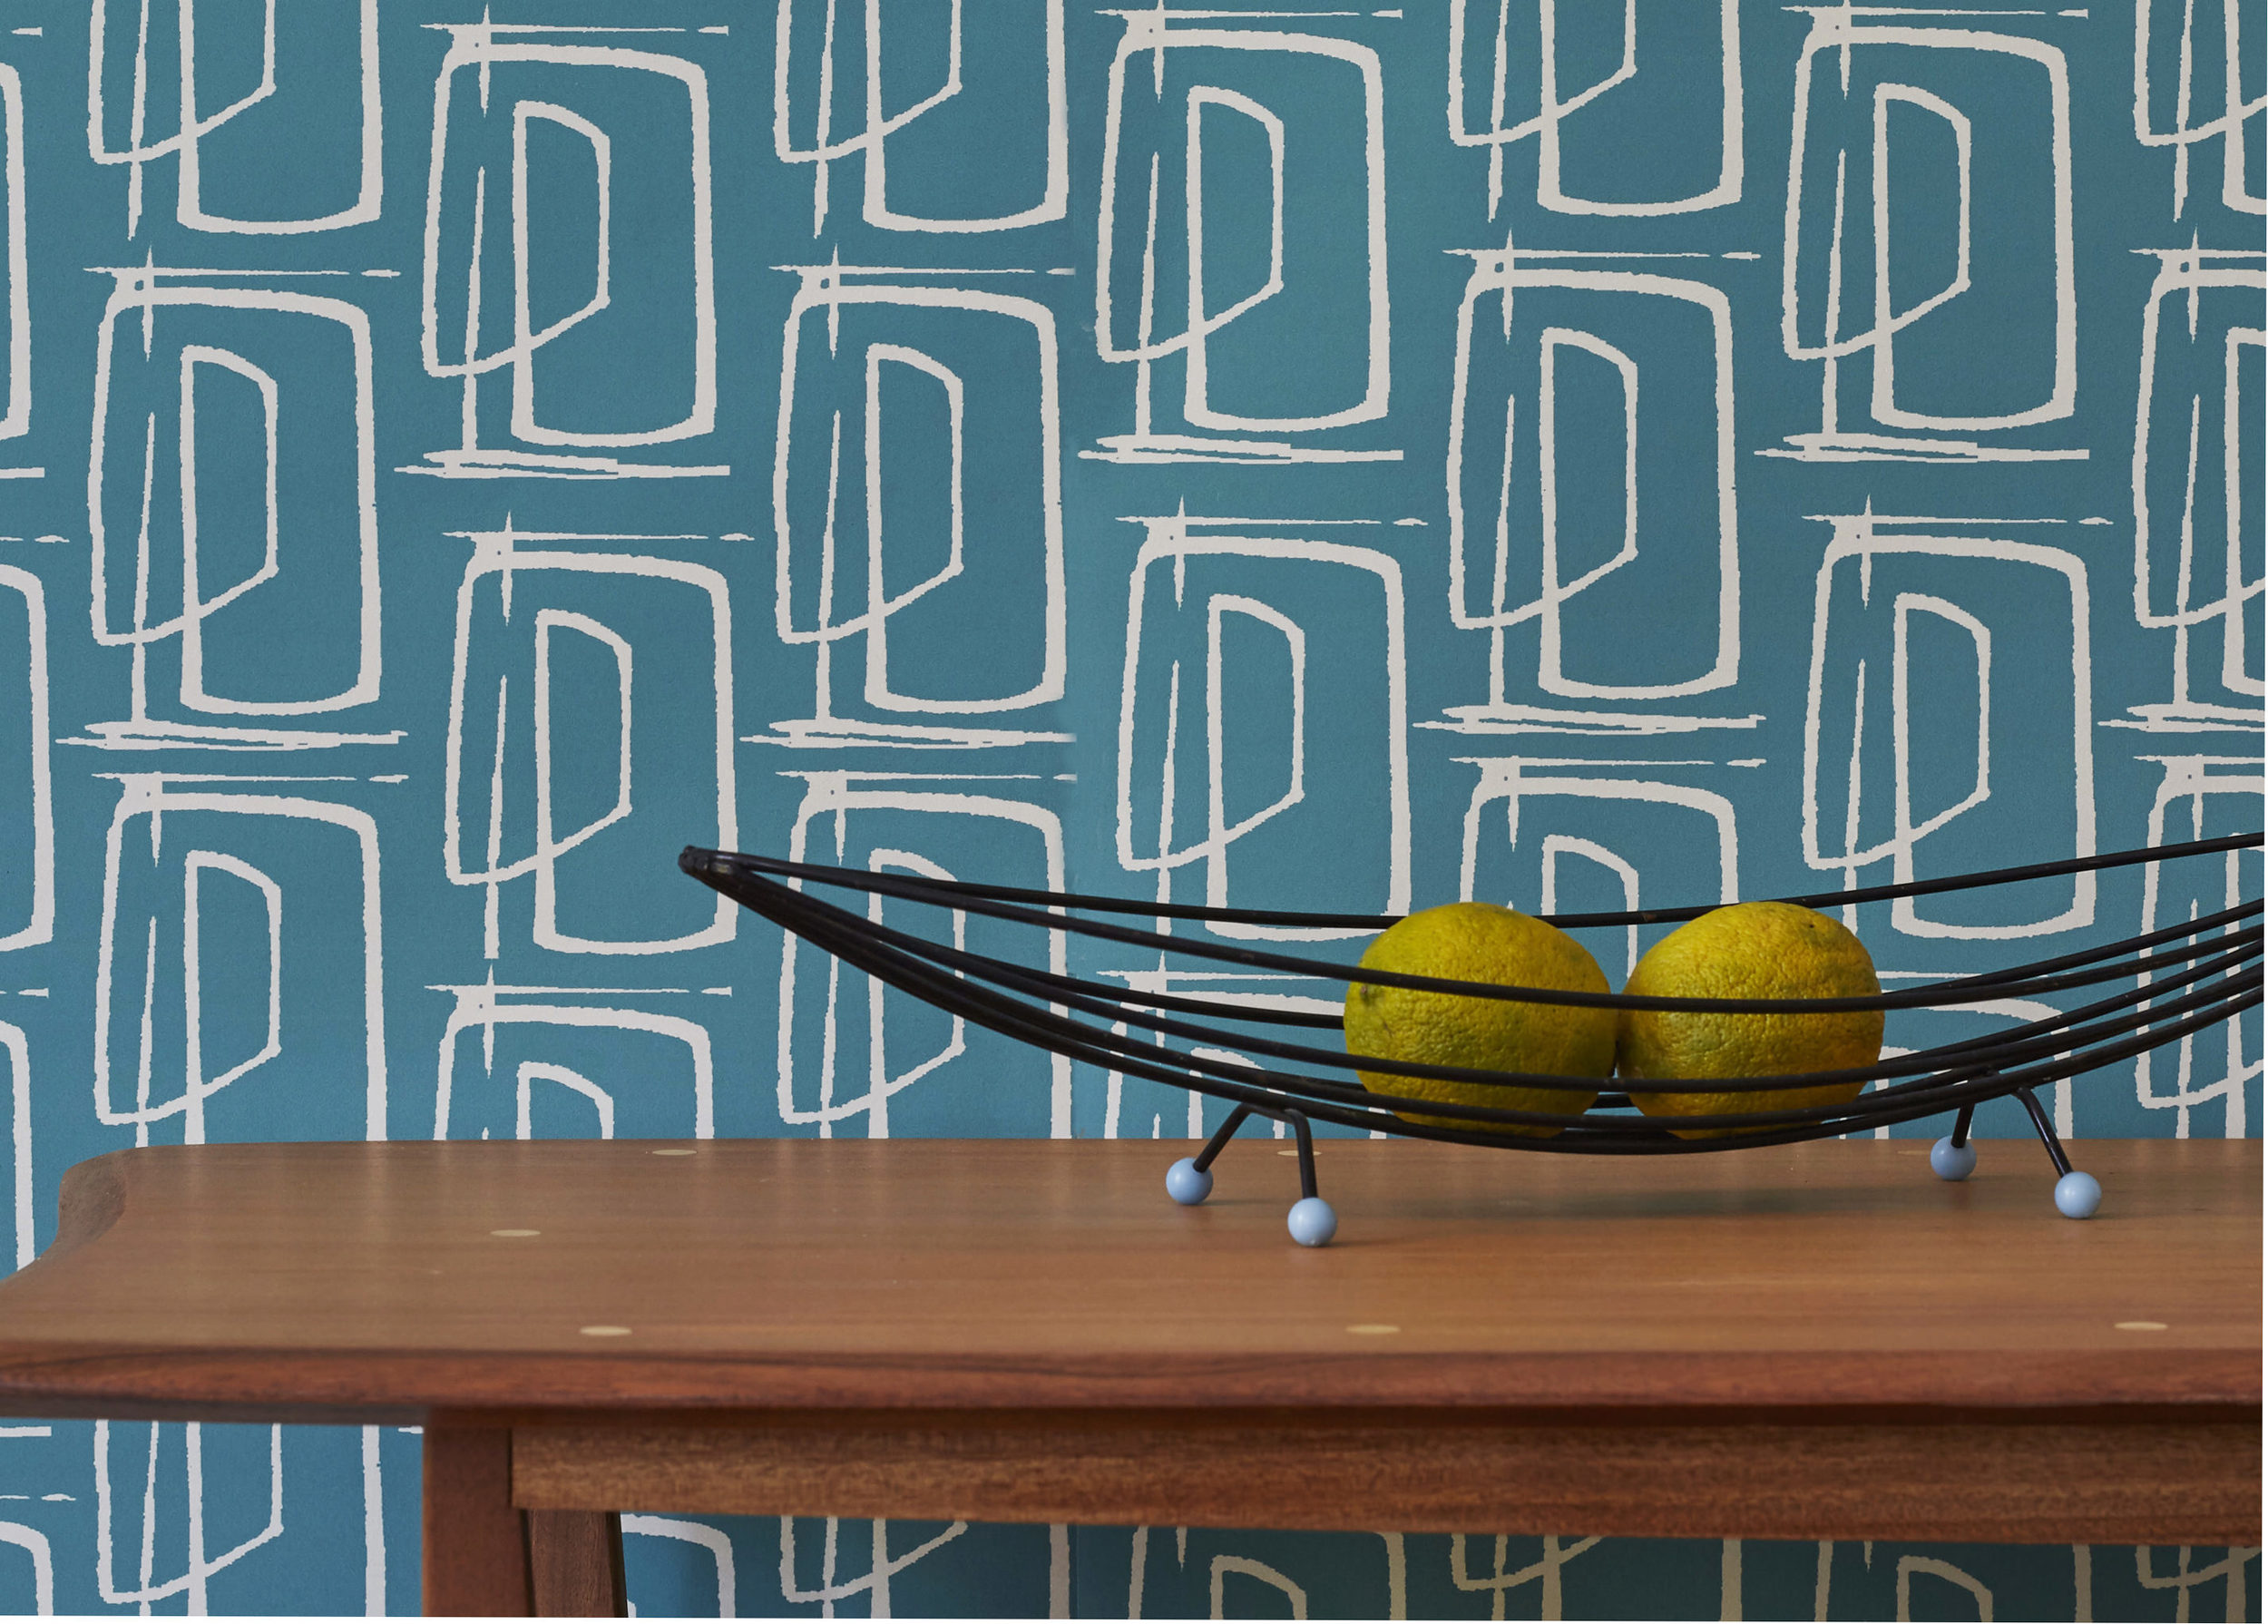 wallpaper in building layout design blue.jpg